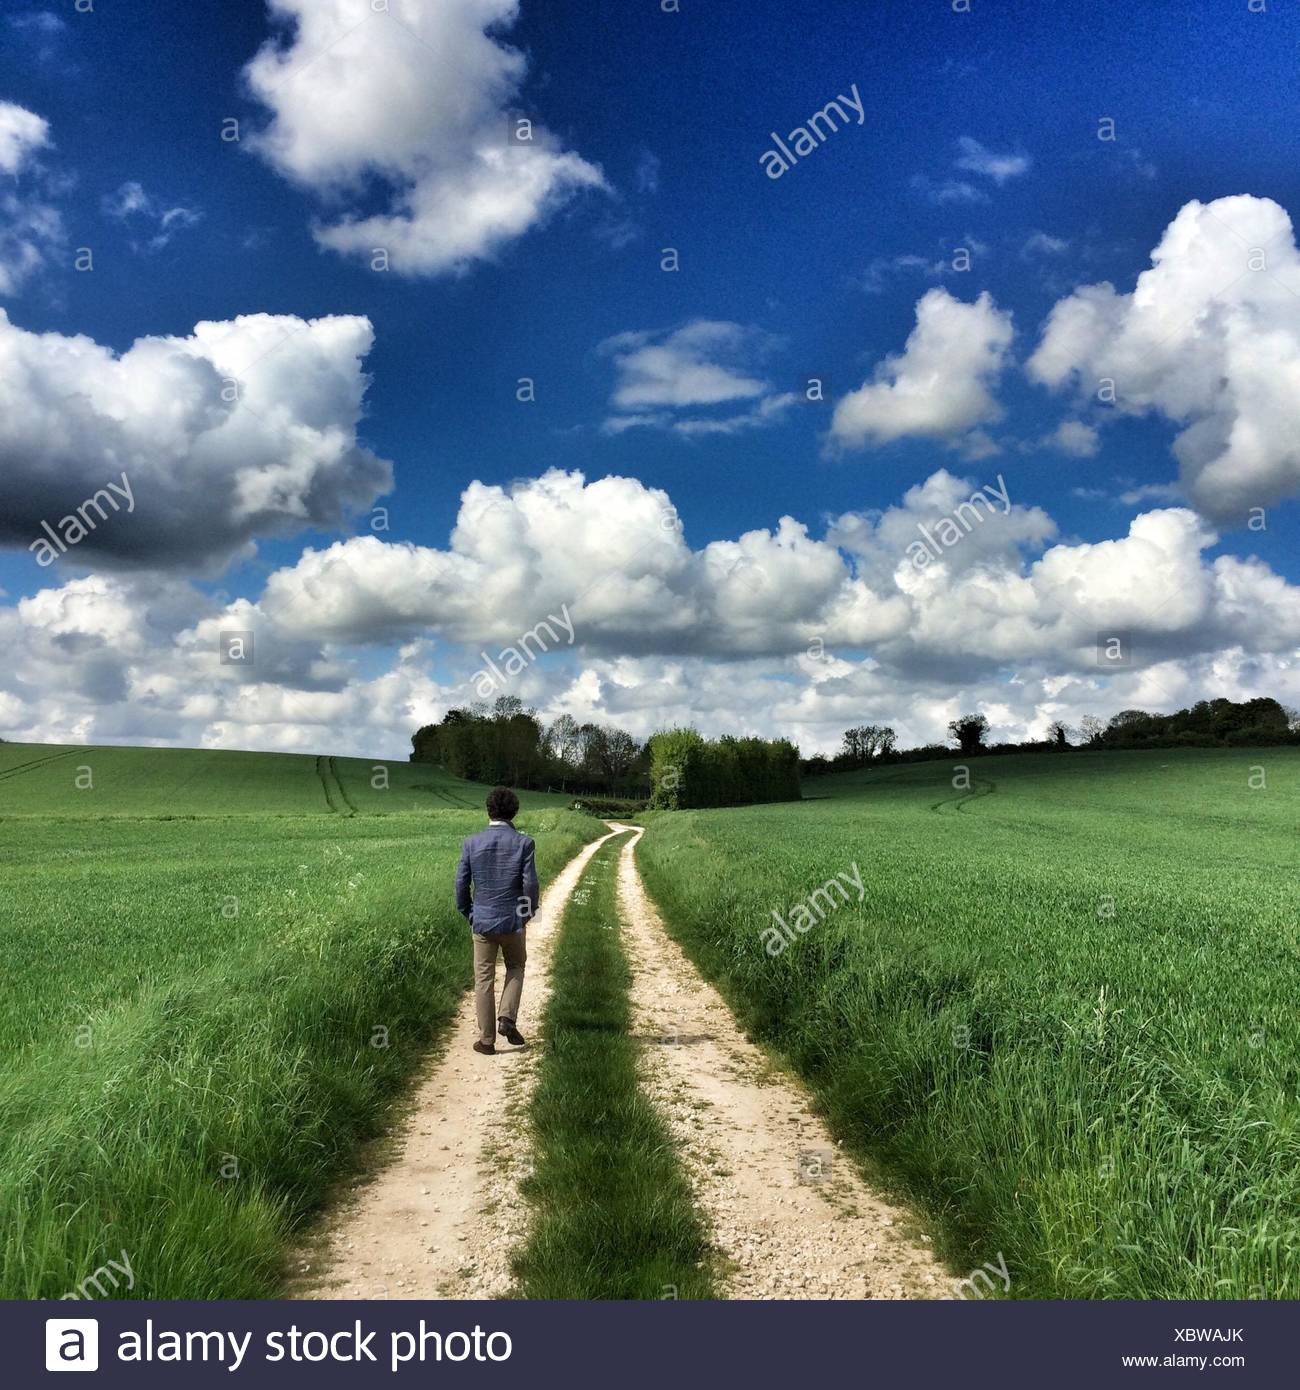 Rear View Of Man Walking On Dirt Road - Stock Image